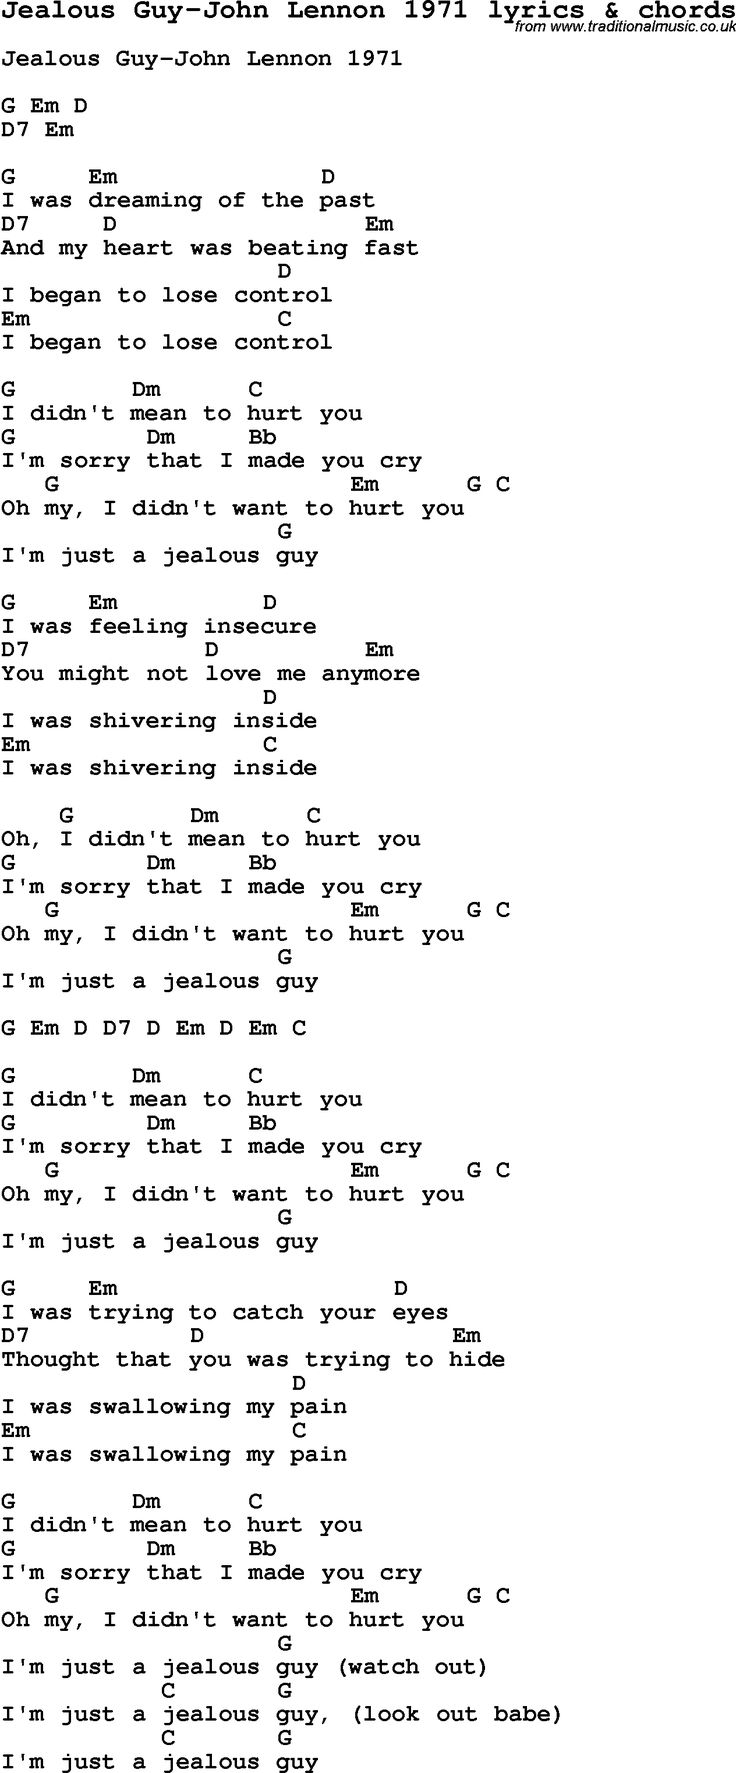 255 best songs images on pinterest music songs and lyrics love song lyrics for jealous guy john lennon 1971 with chords for ukulele hexwebz Image collections